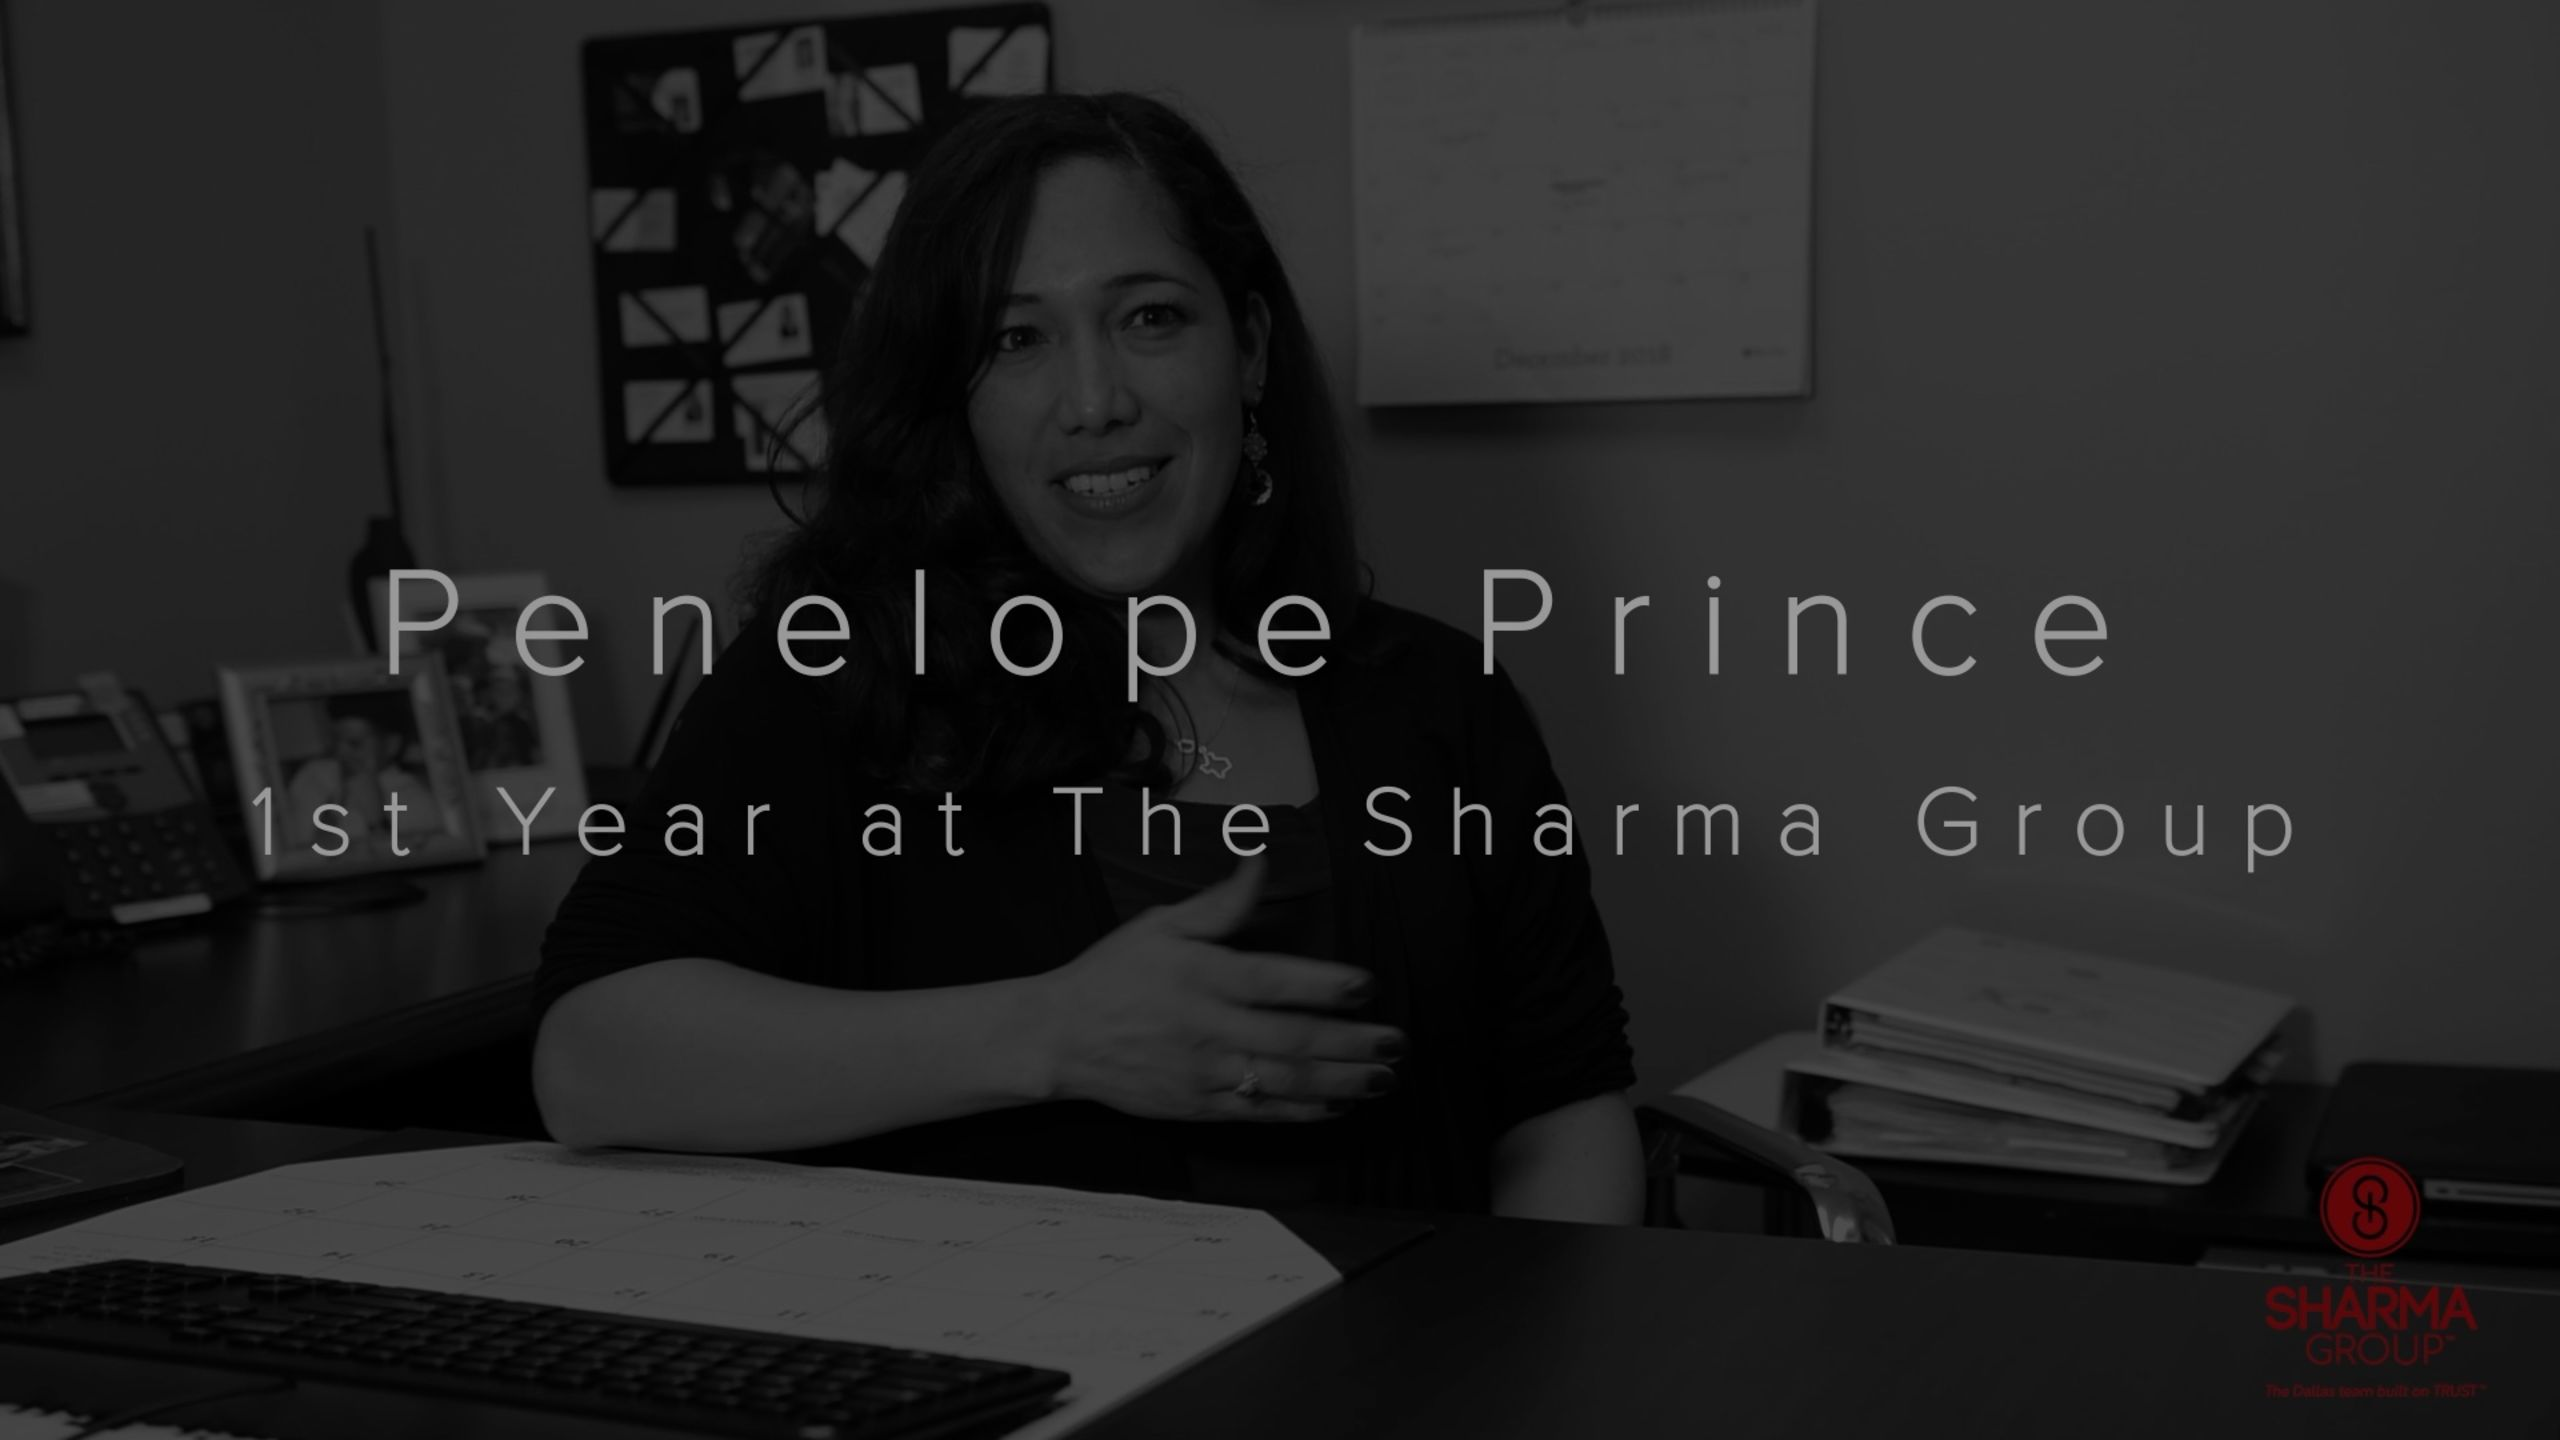 Meet Penny – Celebrating Her 1 Year Mark At The Sharma Group